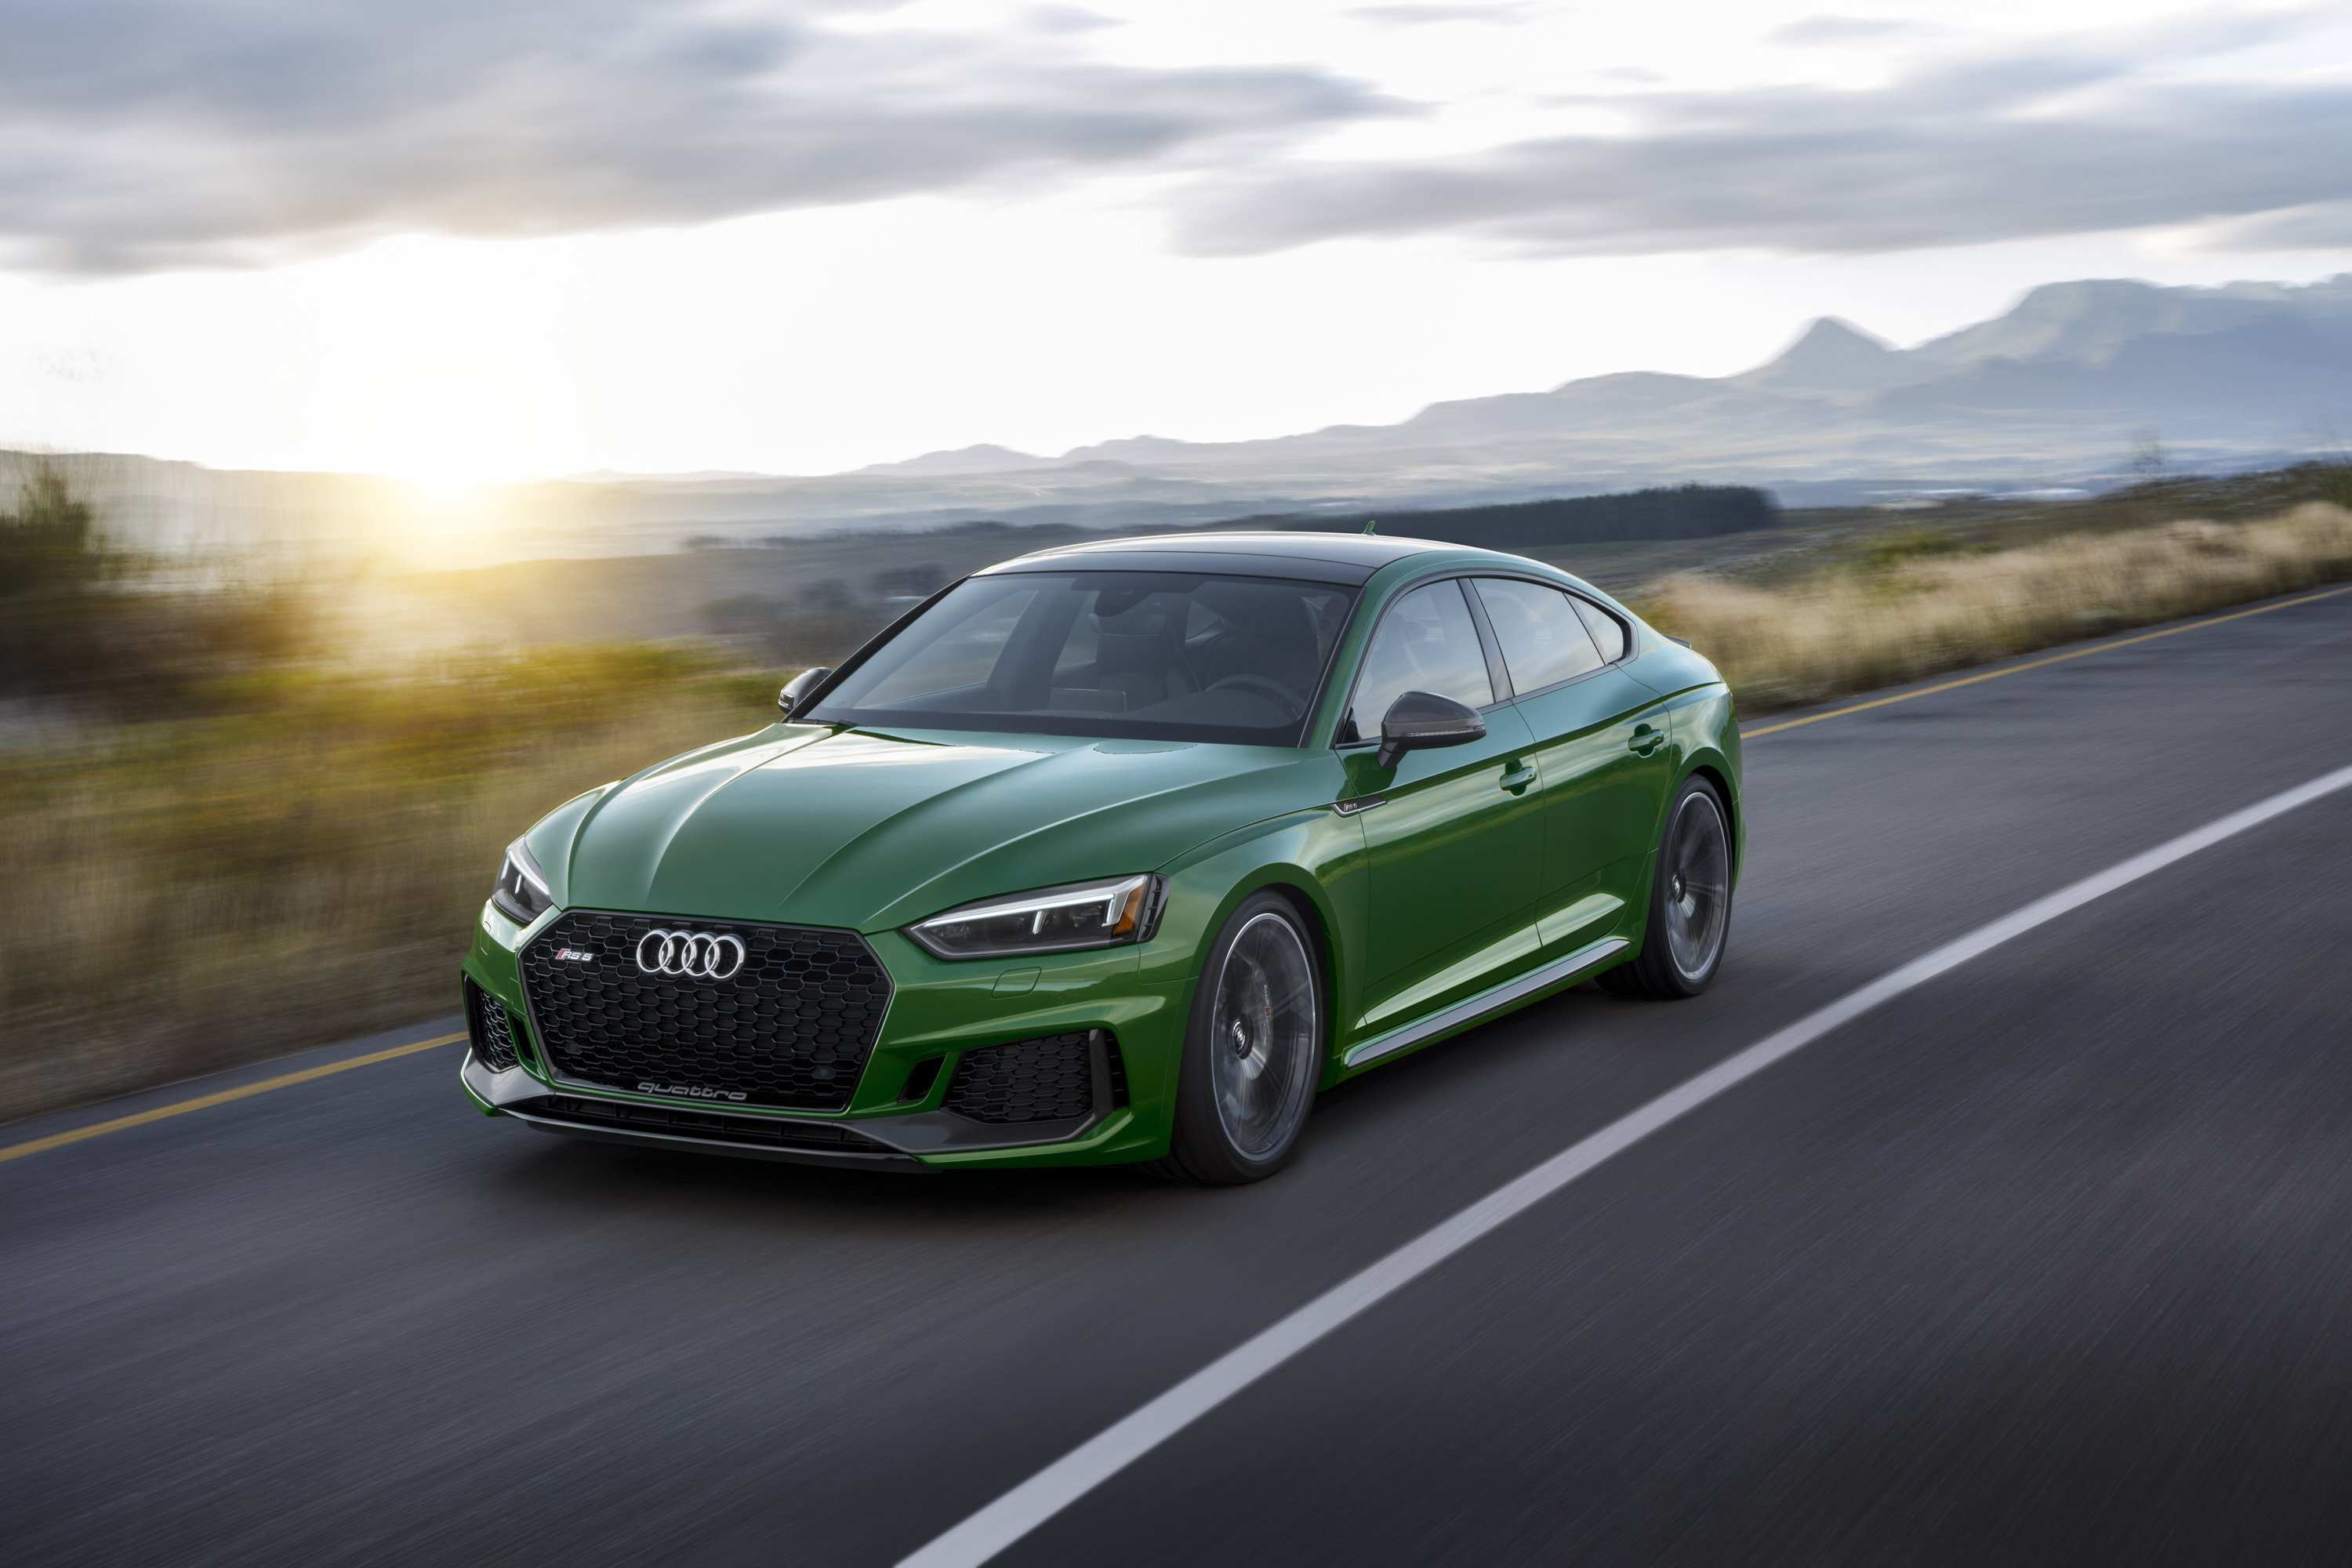 88 Gallery of New 2019 Audi Rs5 Ratings for New 2019 Audi Rs5